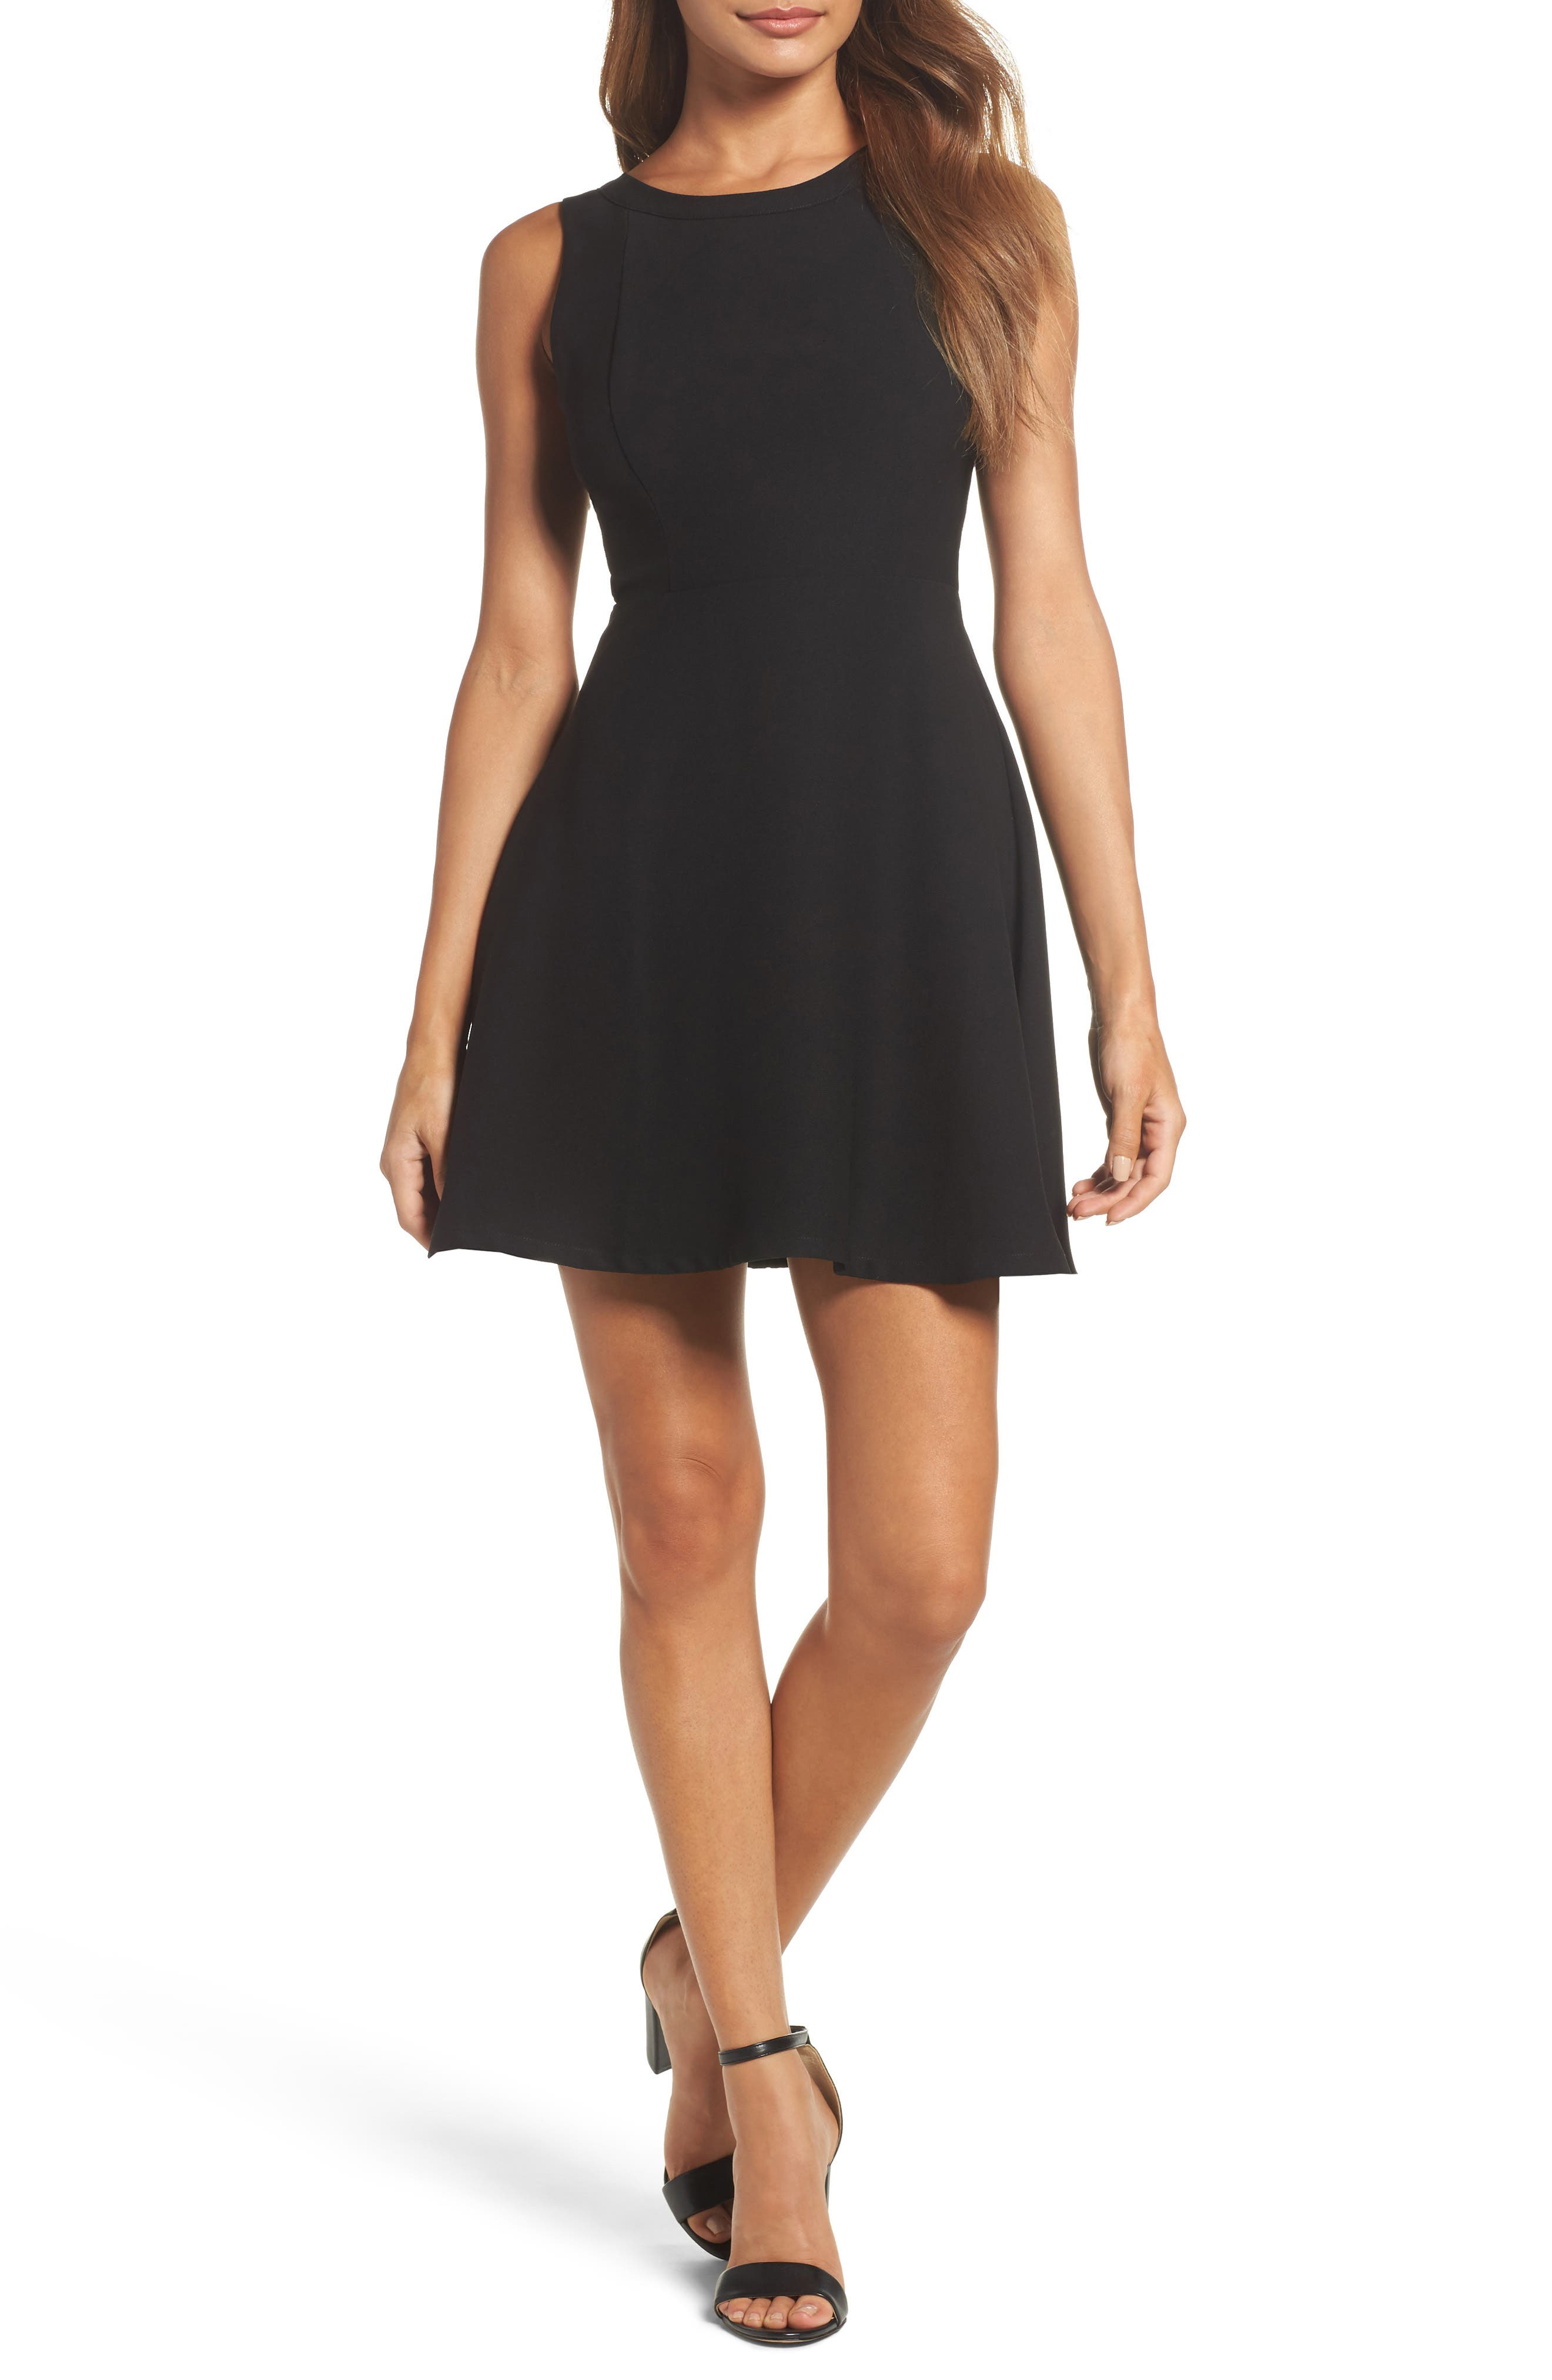 Alternate Image 1 Selected - 19 Cooper Crepe Fit & Flare Dress